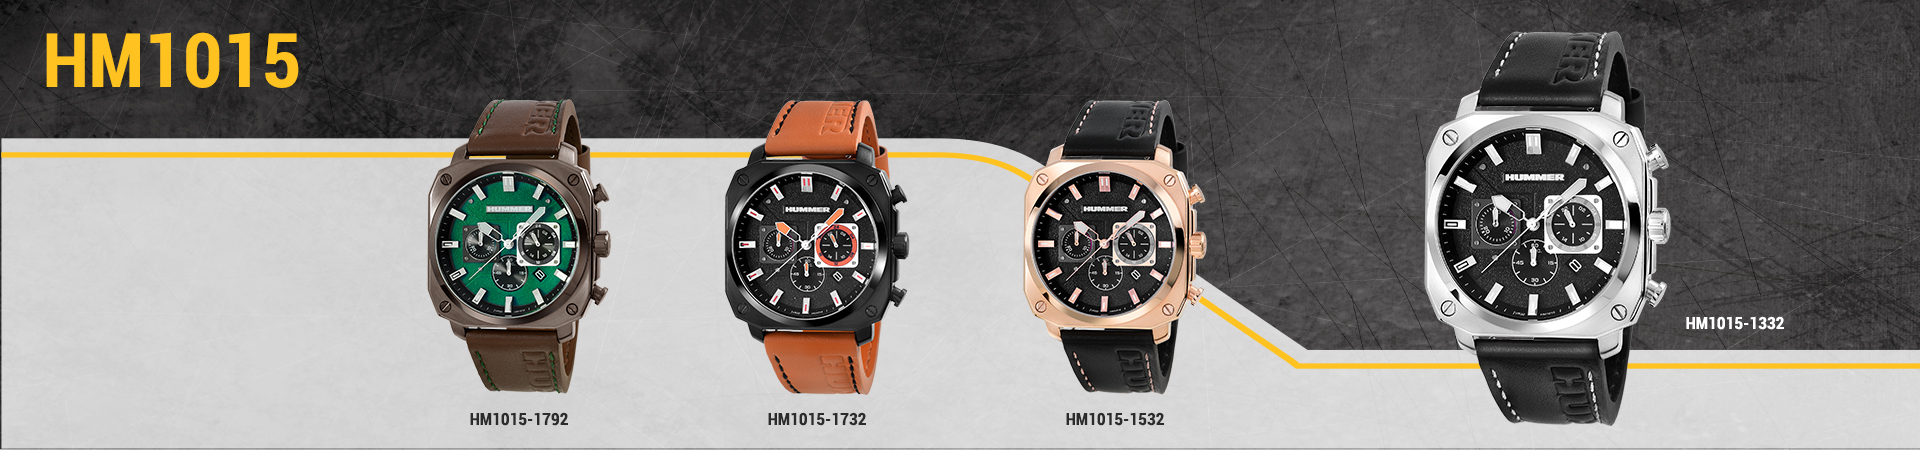 Hummer Watch Collection HM1015